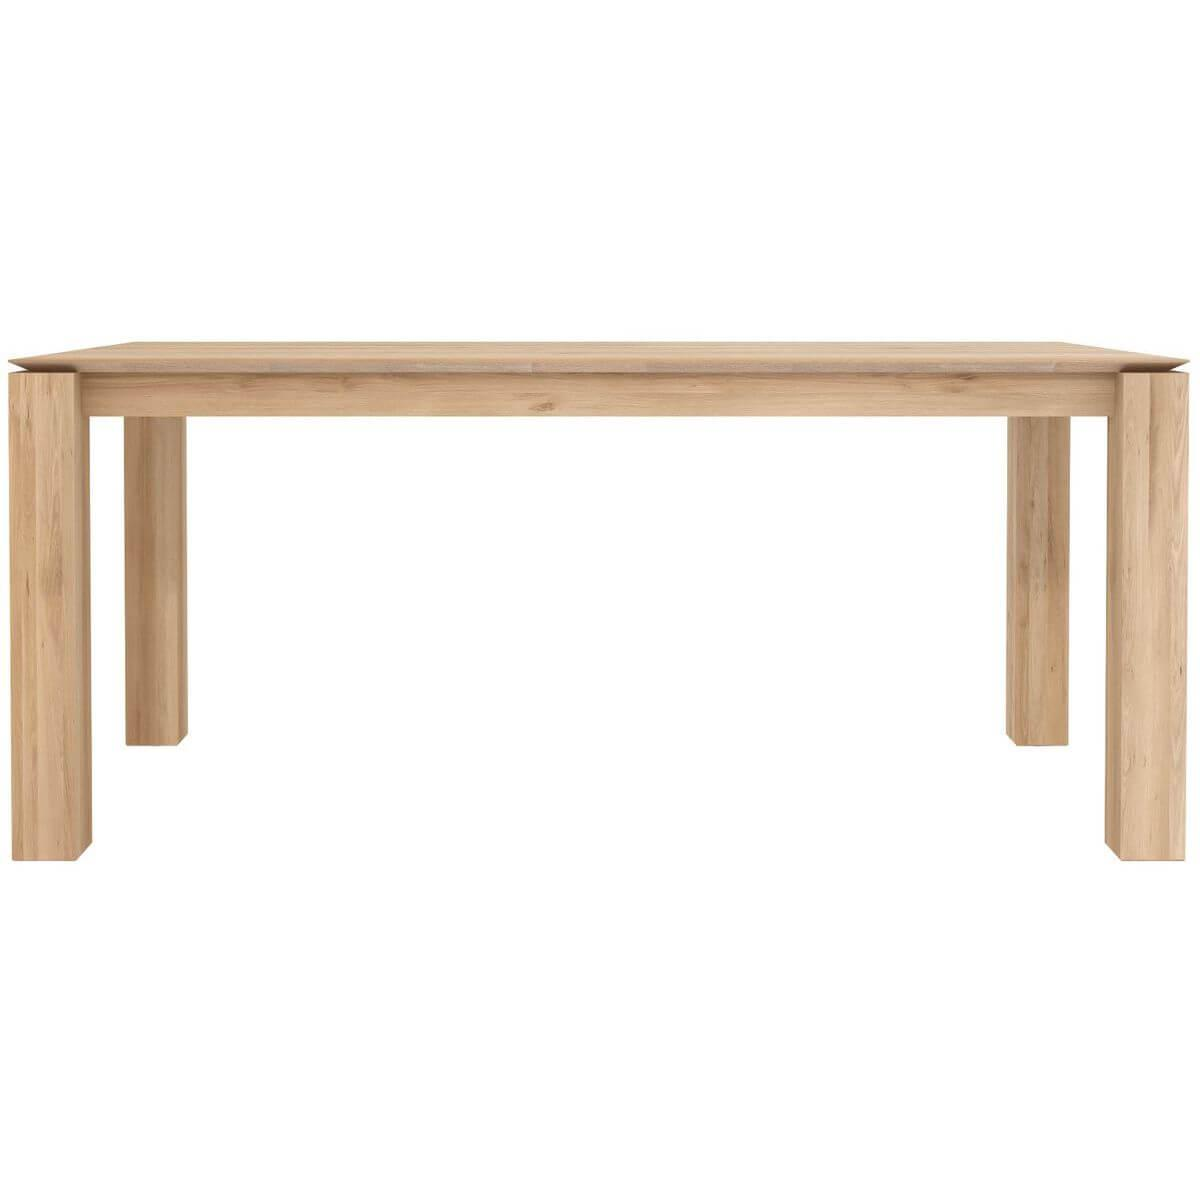 SLICE by  Ethnicraft Table chêne 180x90 cm